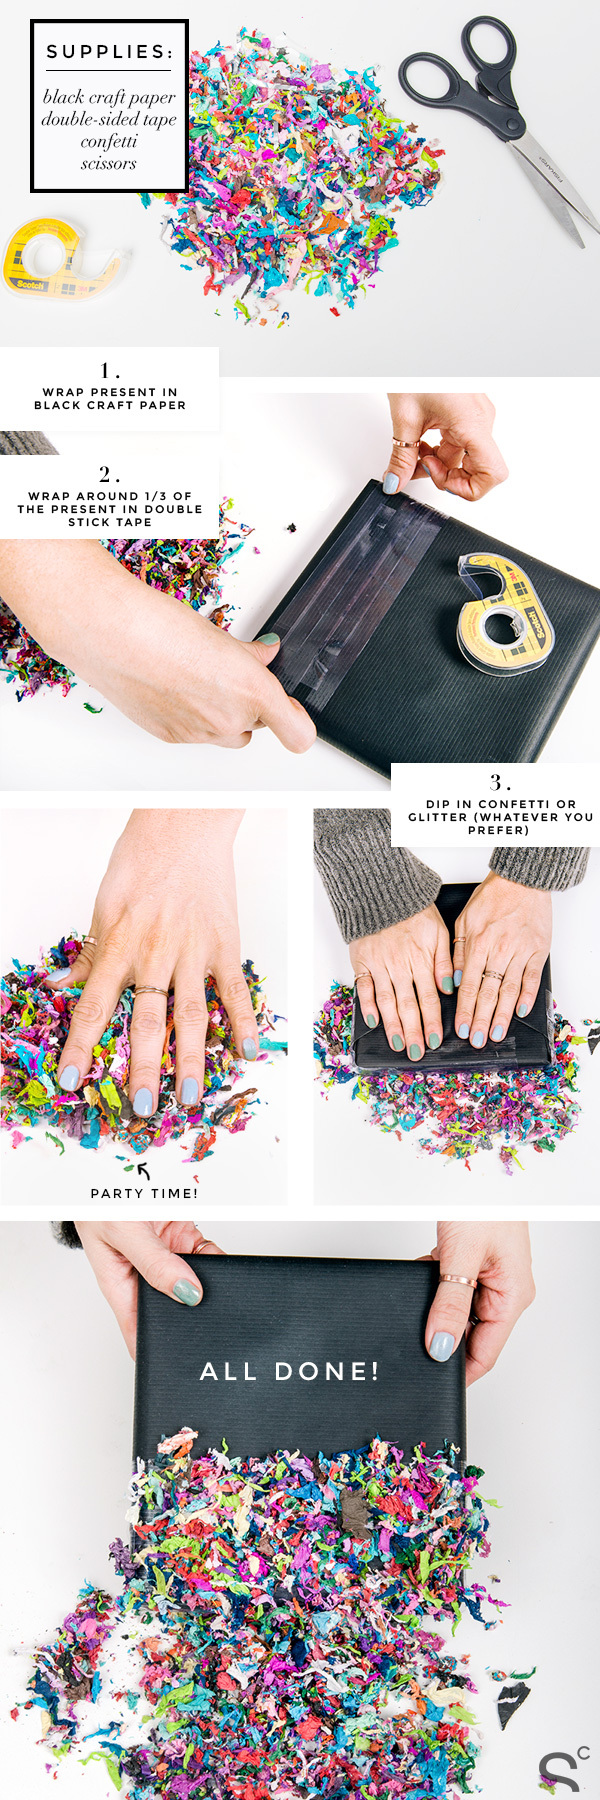 diy gift wrapping with confetti